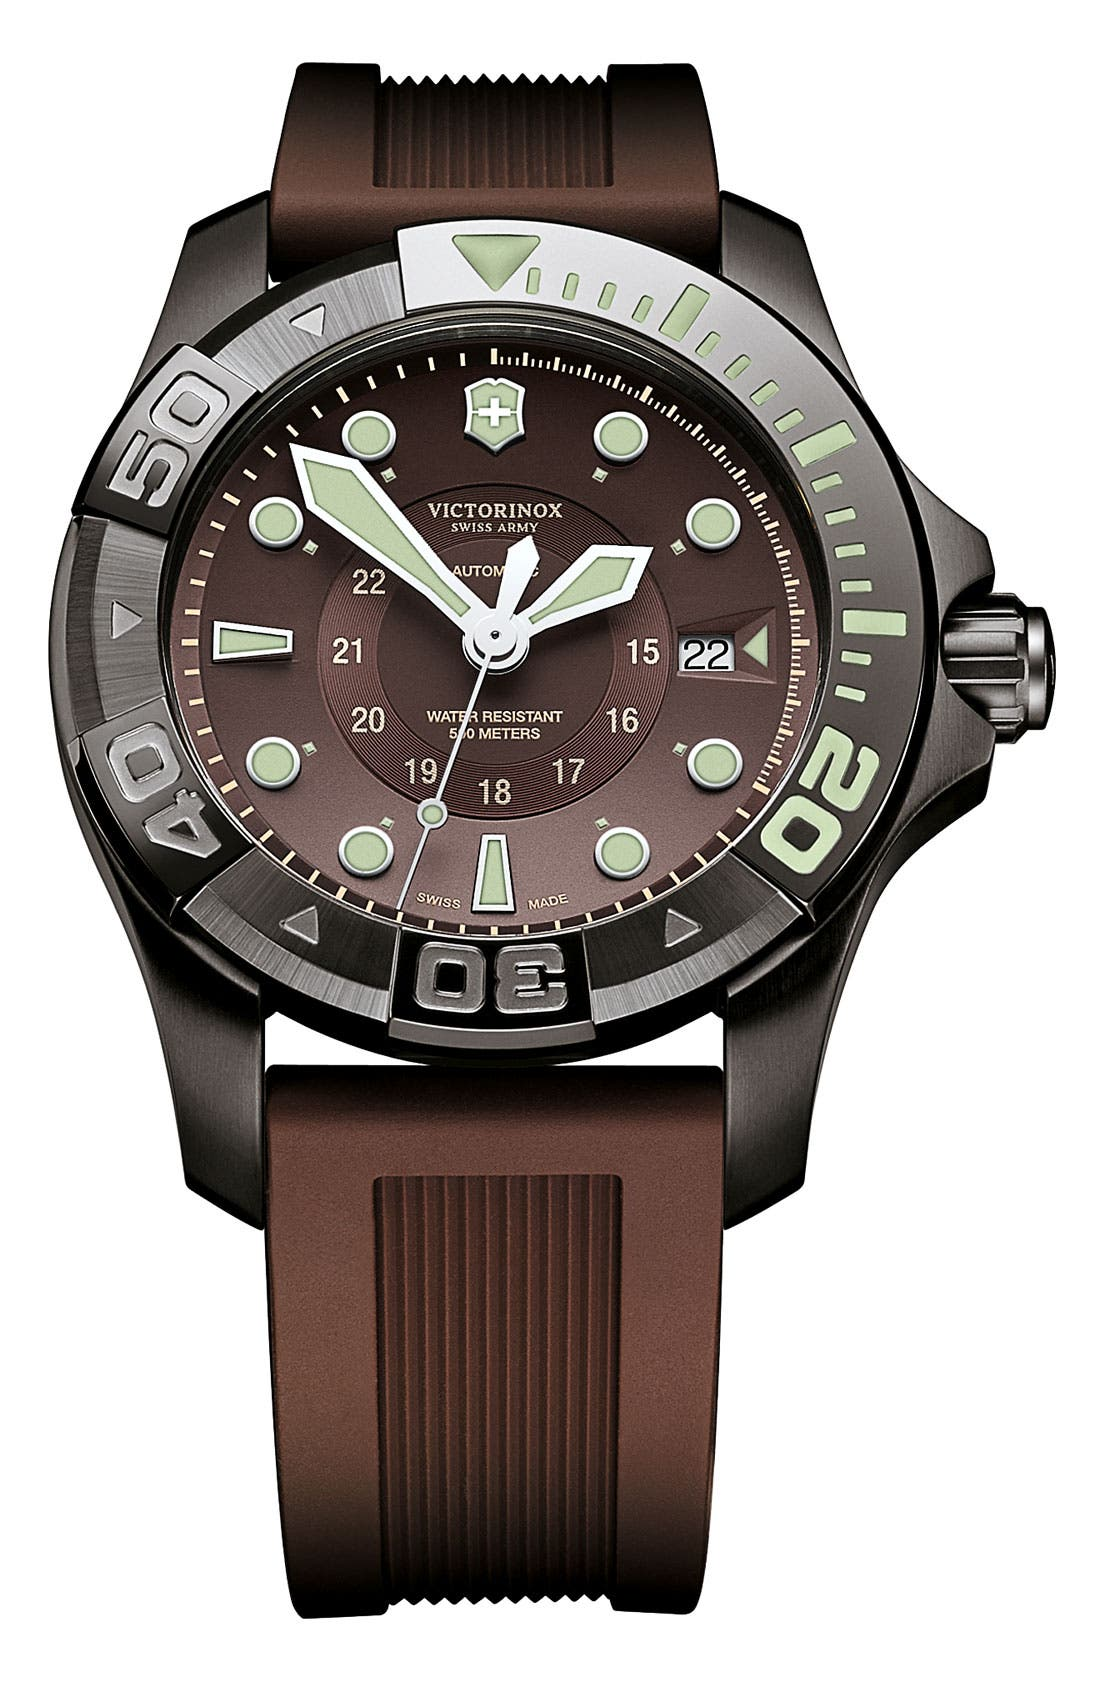 Main Image - Victorinox Swiss Army® 'Dive Master 550' Automatic Watch, 43mm